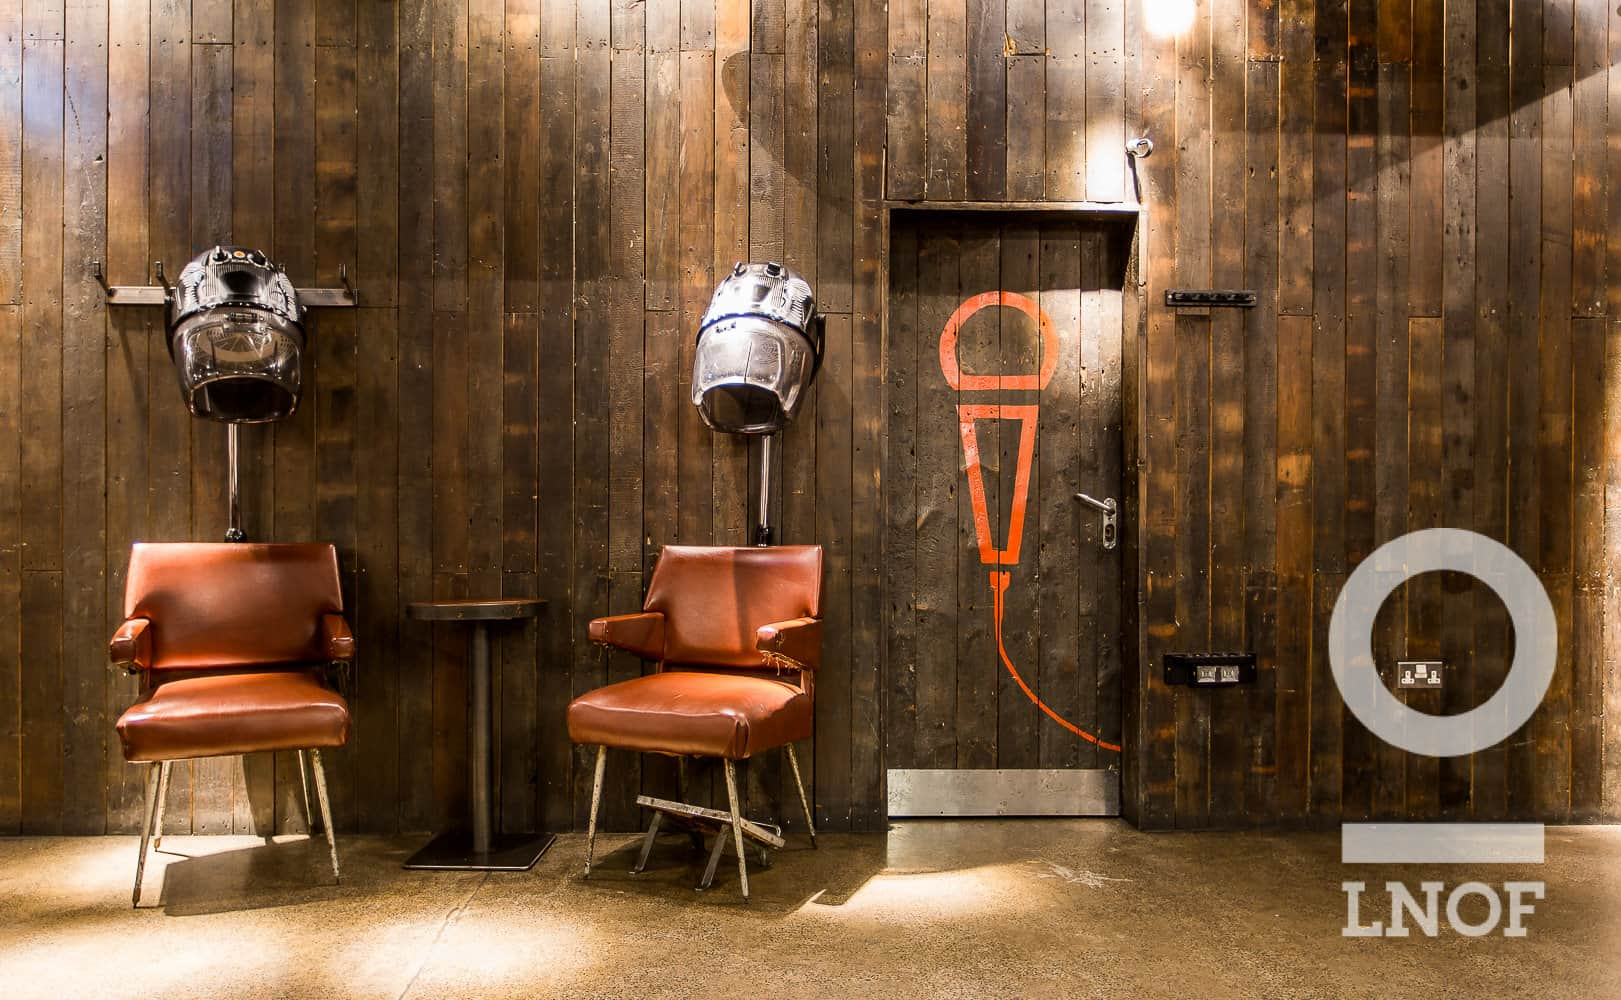 Two chairs with old fashioned hairdryers above, and a door with a microphone on